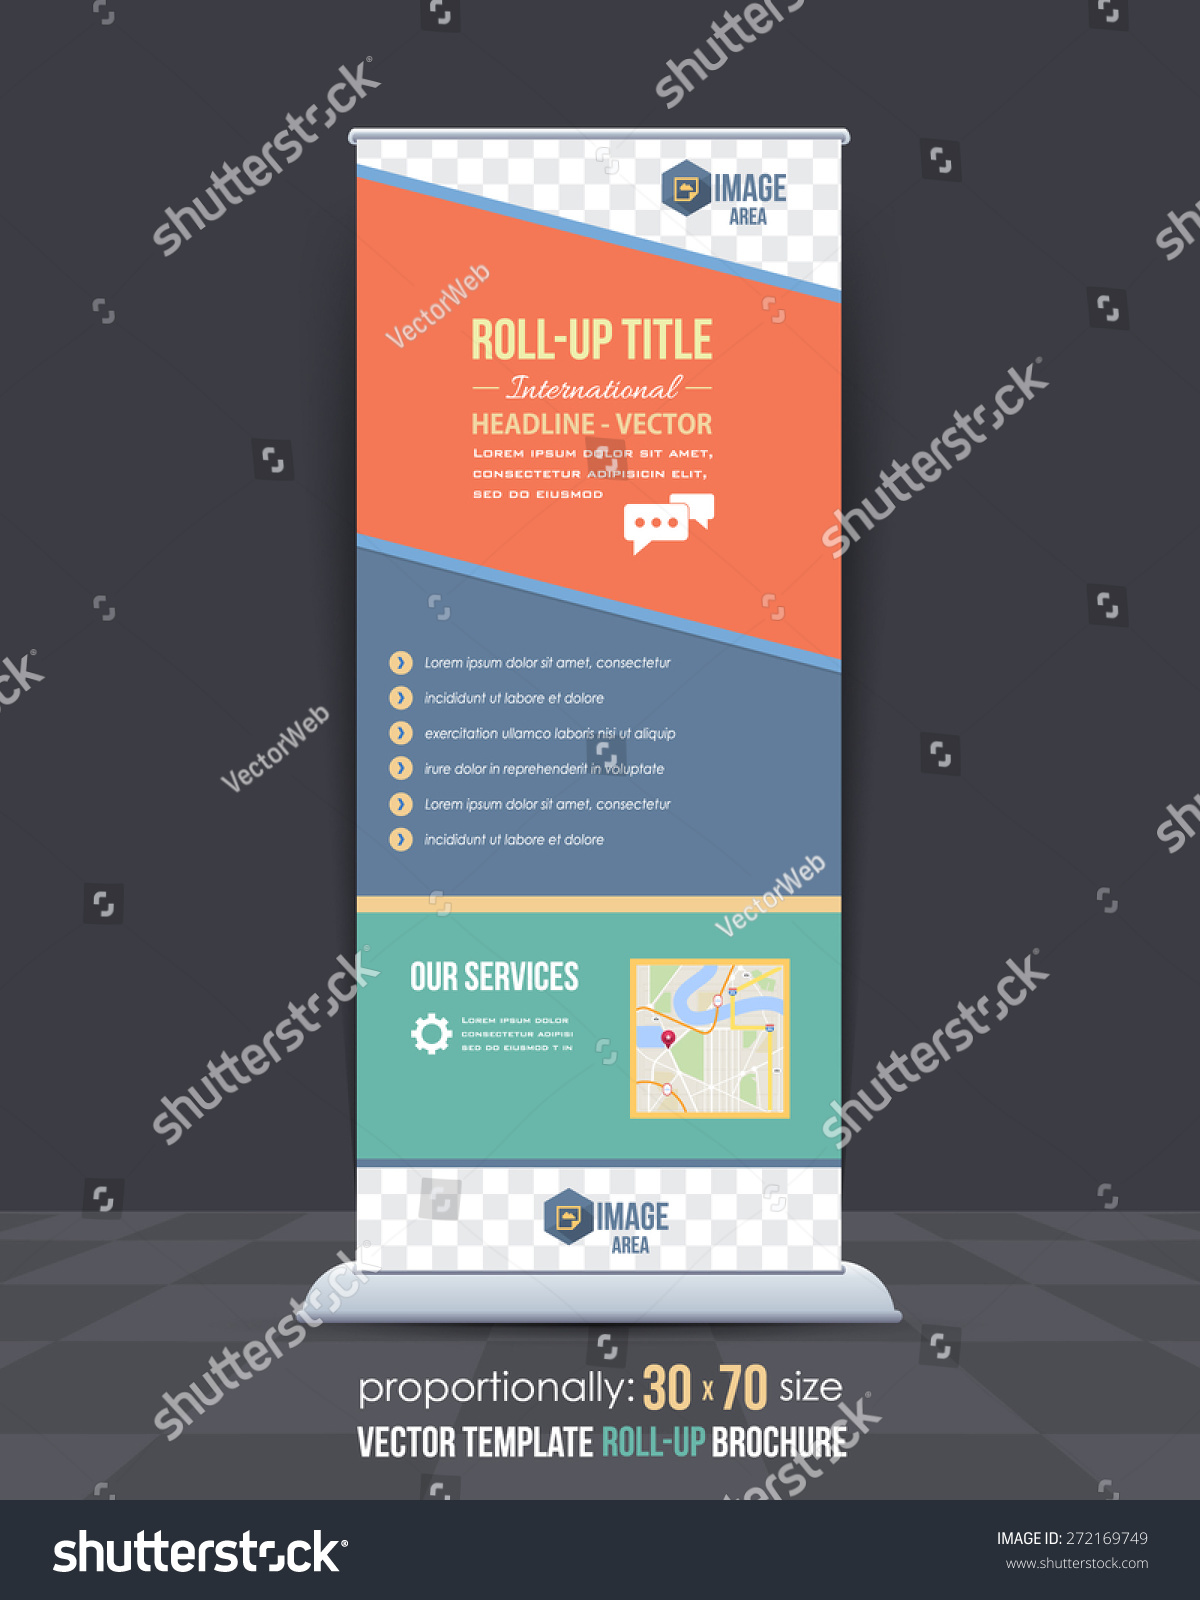 business theme rollup banner design advertising stock vector business theme roll up banner design advertising vector template